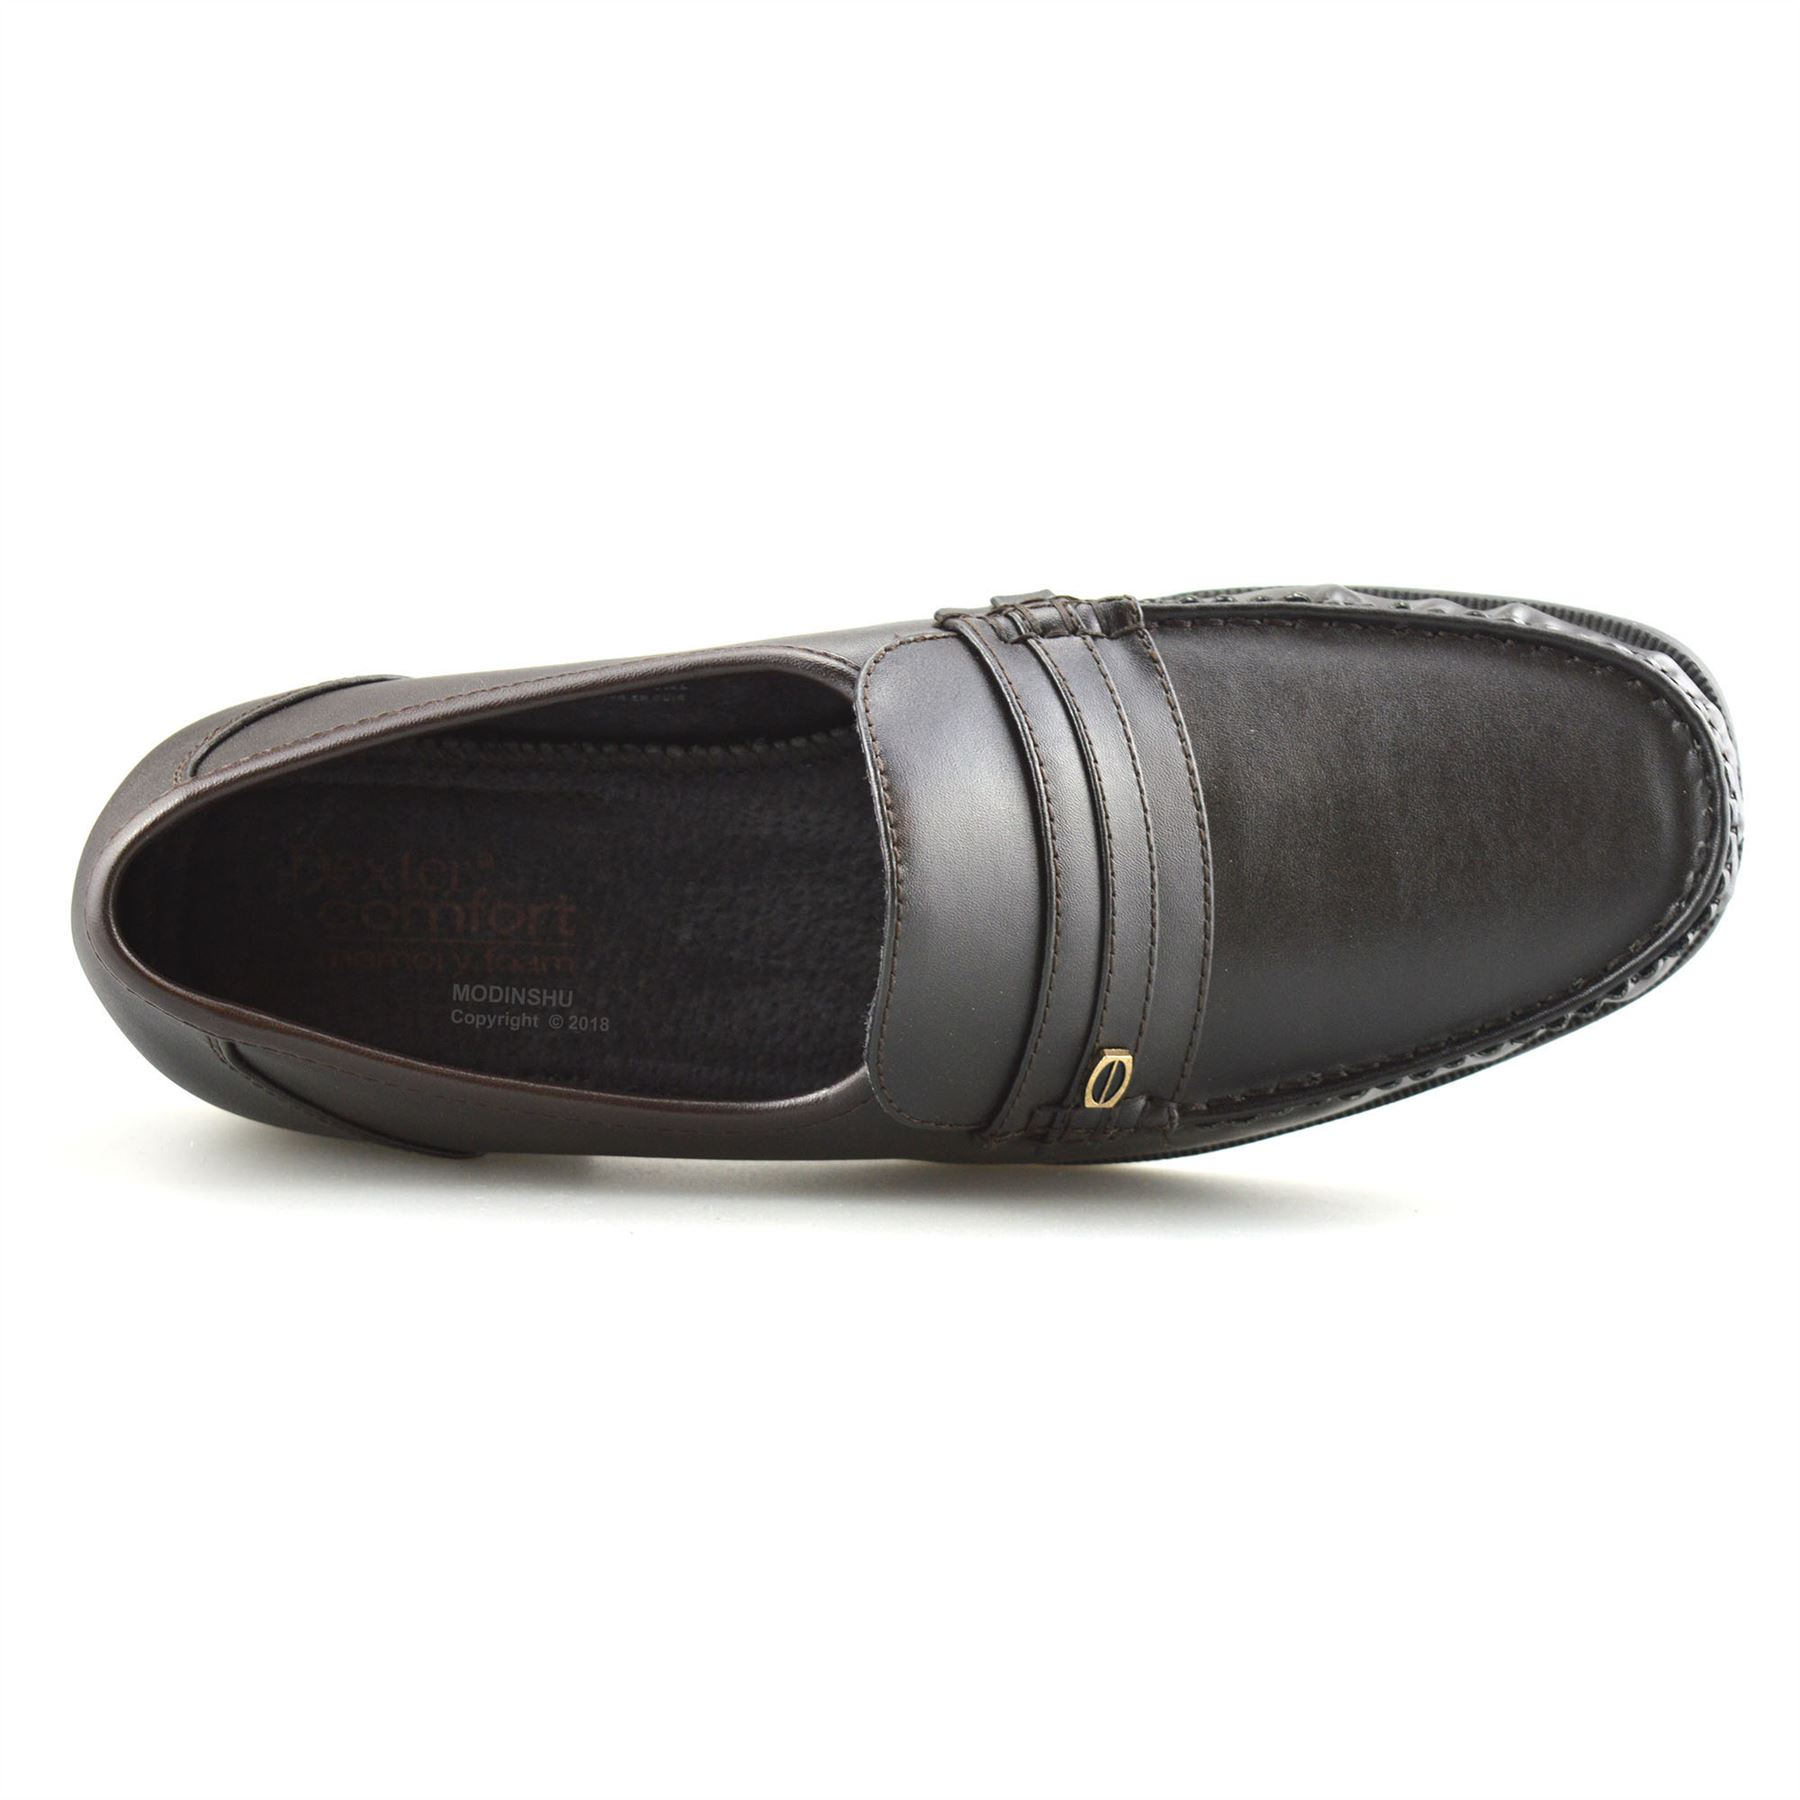 Mens-New-Slip-On-Casual-Smart-Memory-Foam-Mocassin-Designer-Loafers-Shoes-Size thumbnail 22